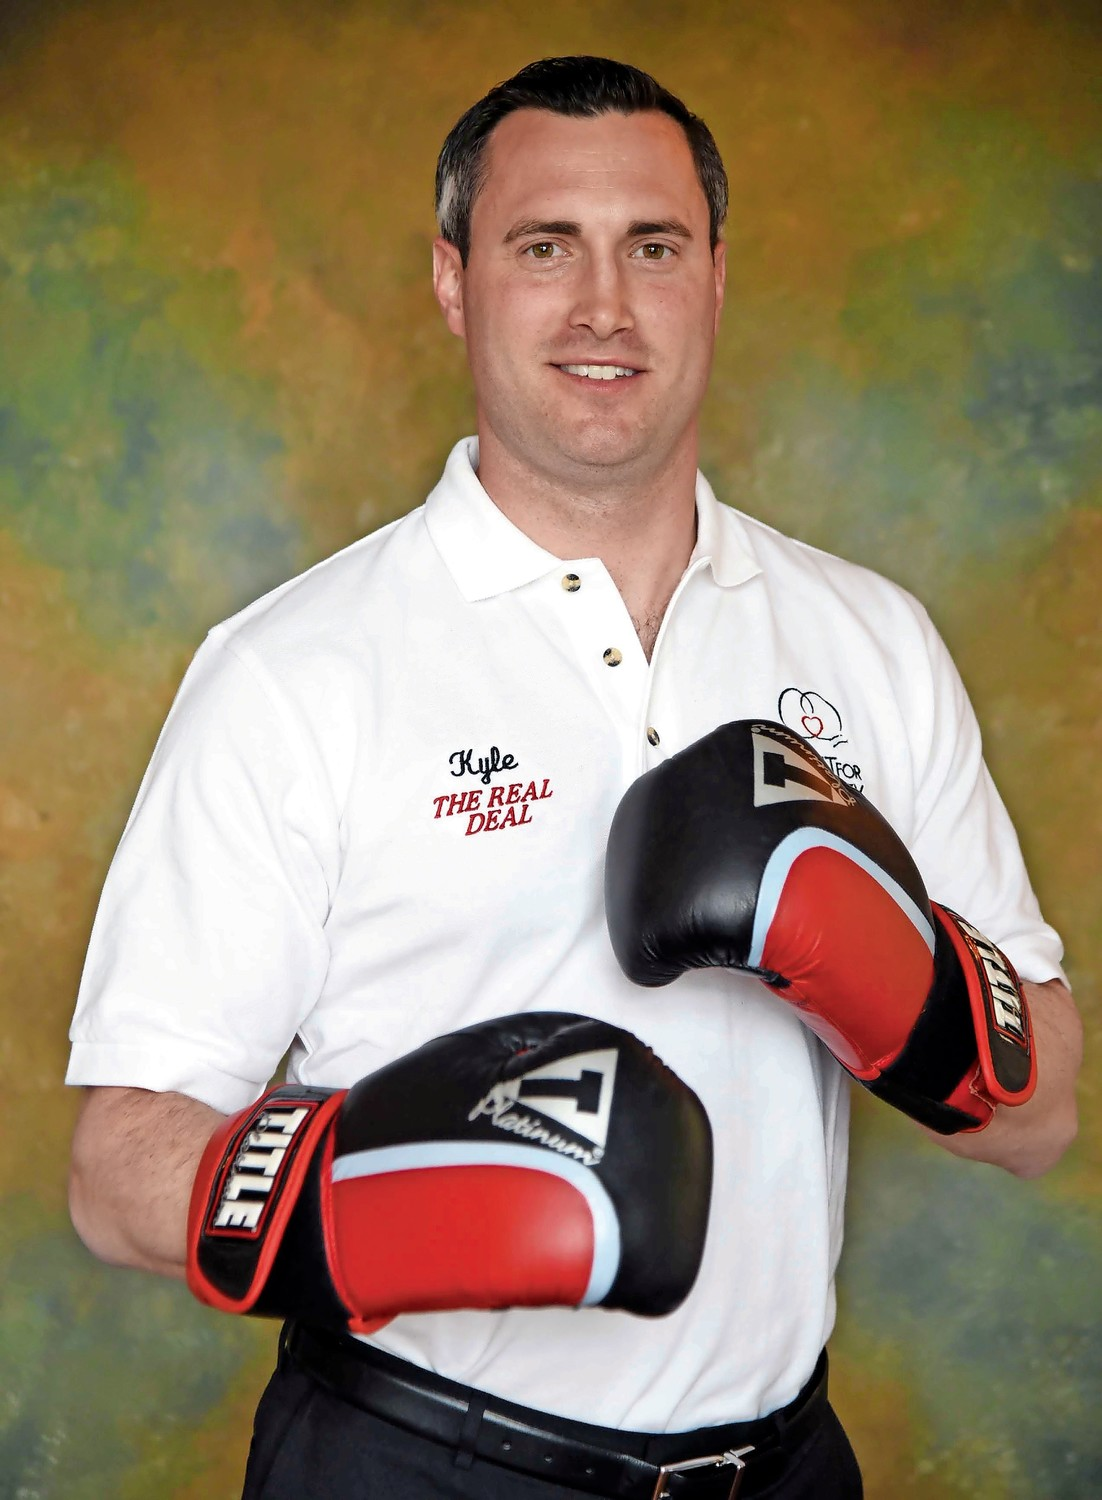 Kyle Burkhardt, of Seaford, will box in the 14th annual Long Island Fight for Charity Main Event on Nov. 20.